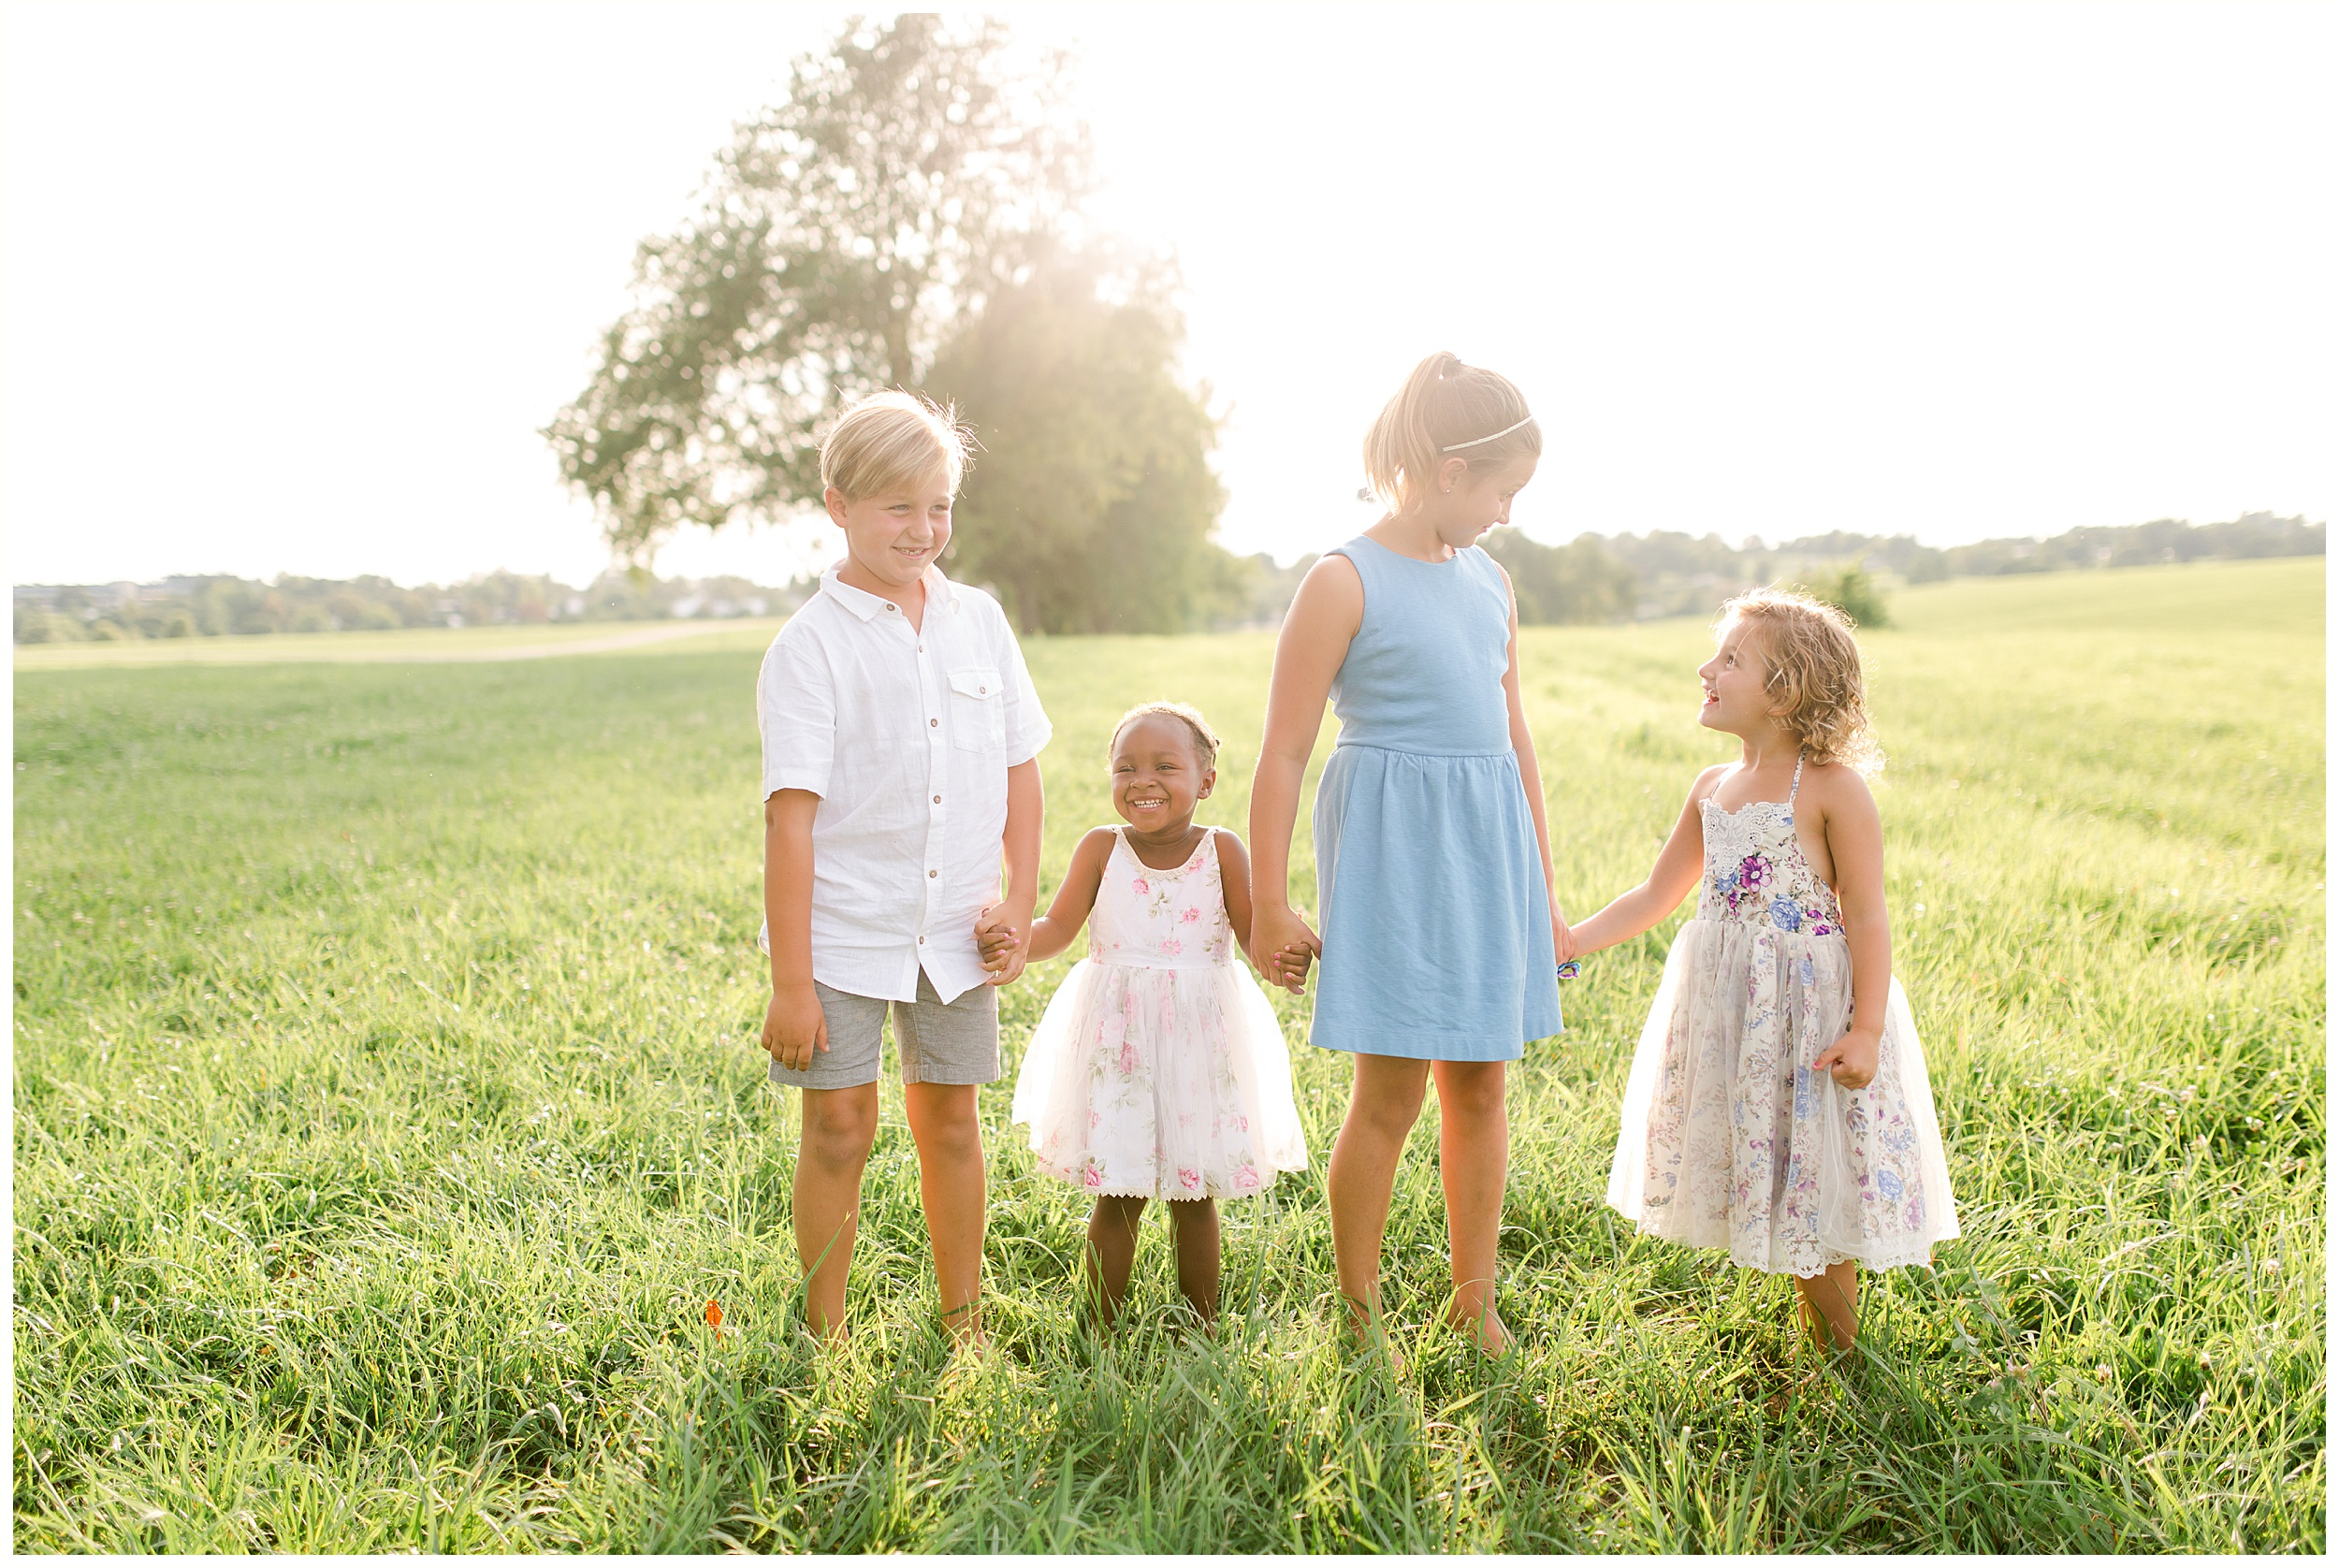 lexington-ky-family-lifestyle-photographer-priscilla-baierlein_1295.jpg